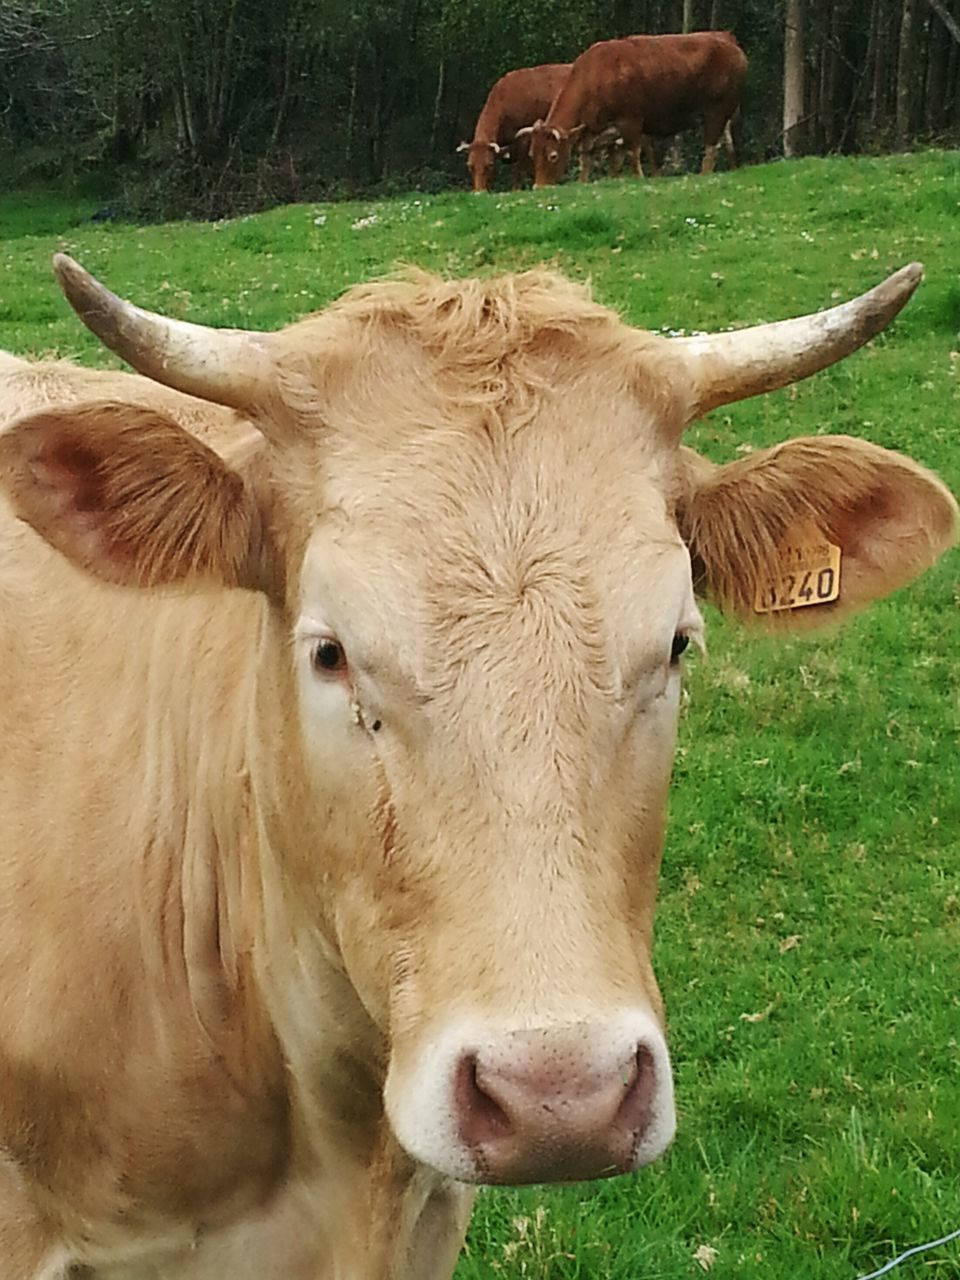 cow, domestic animals, animal themes, mammal, domestic cattle, livestock, one animal, cattle, field, grass, green color, day, domesticated animal tag, nature, close-up, outdoors, no people